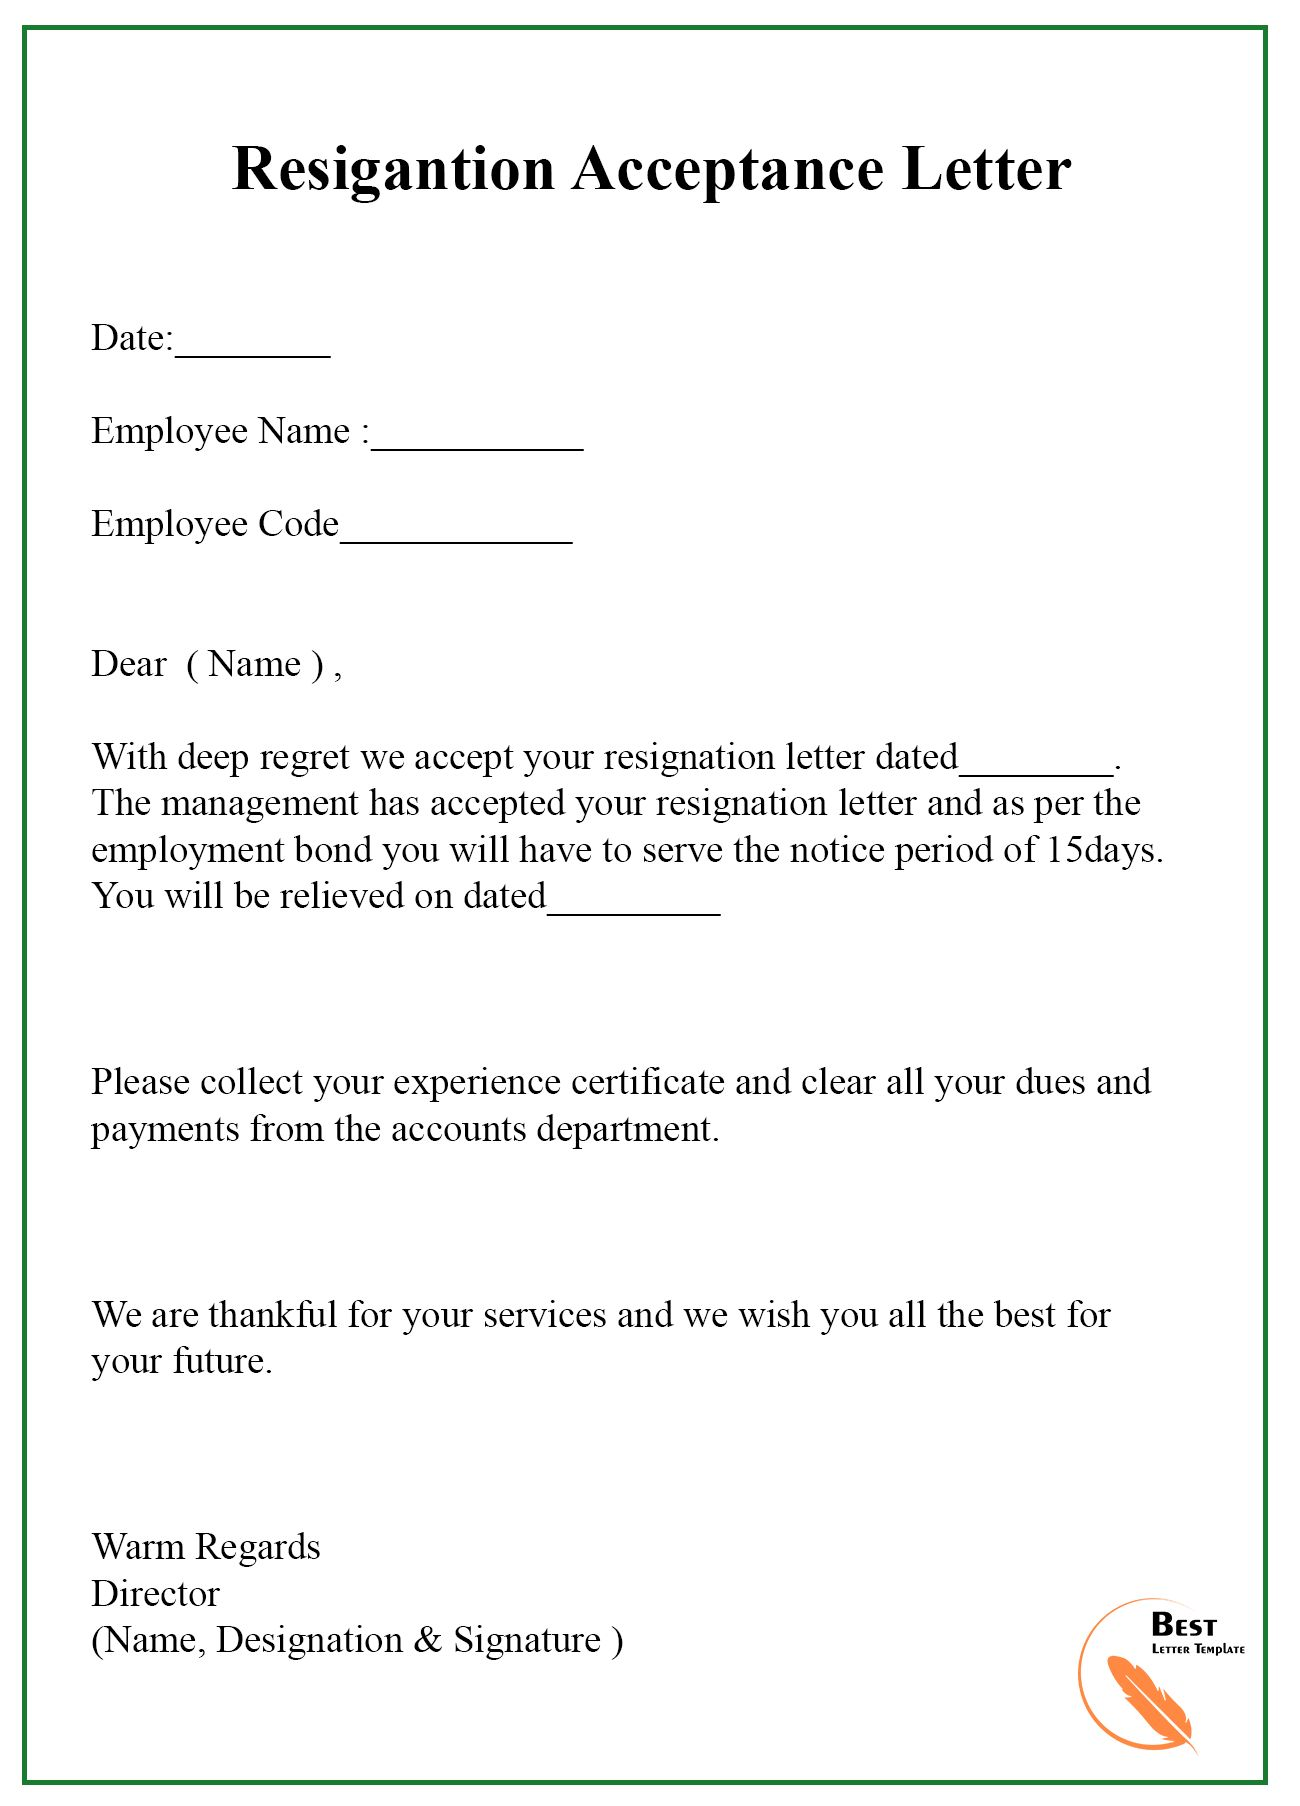 9+ resignation acceptance letter template [examples sample experienced resume software engineer for fresh graduate primary skills in examples